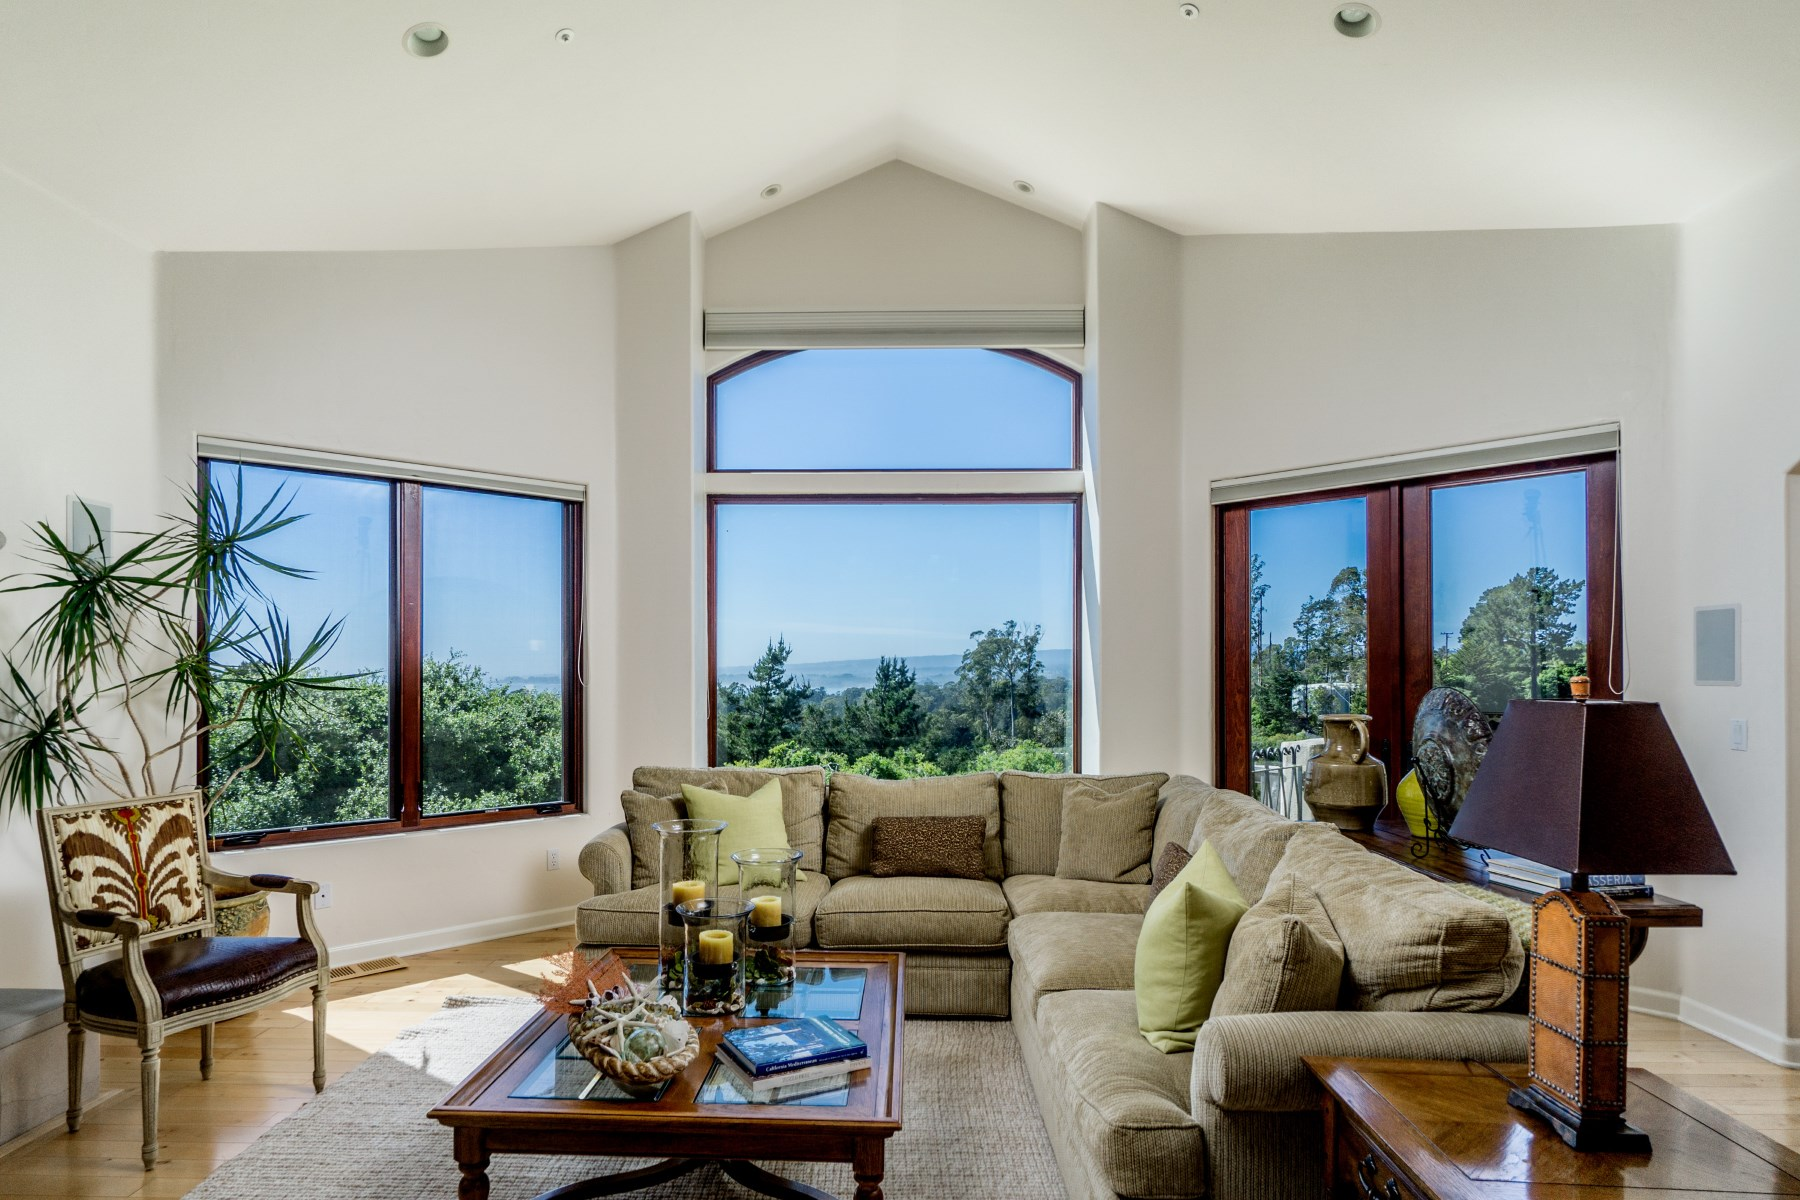 Single Family Home for Active at Ocean Views from Monterey to Santa Cruz 563 Cuesta Drive Aptos, California 95003 United States